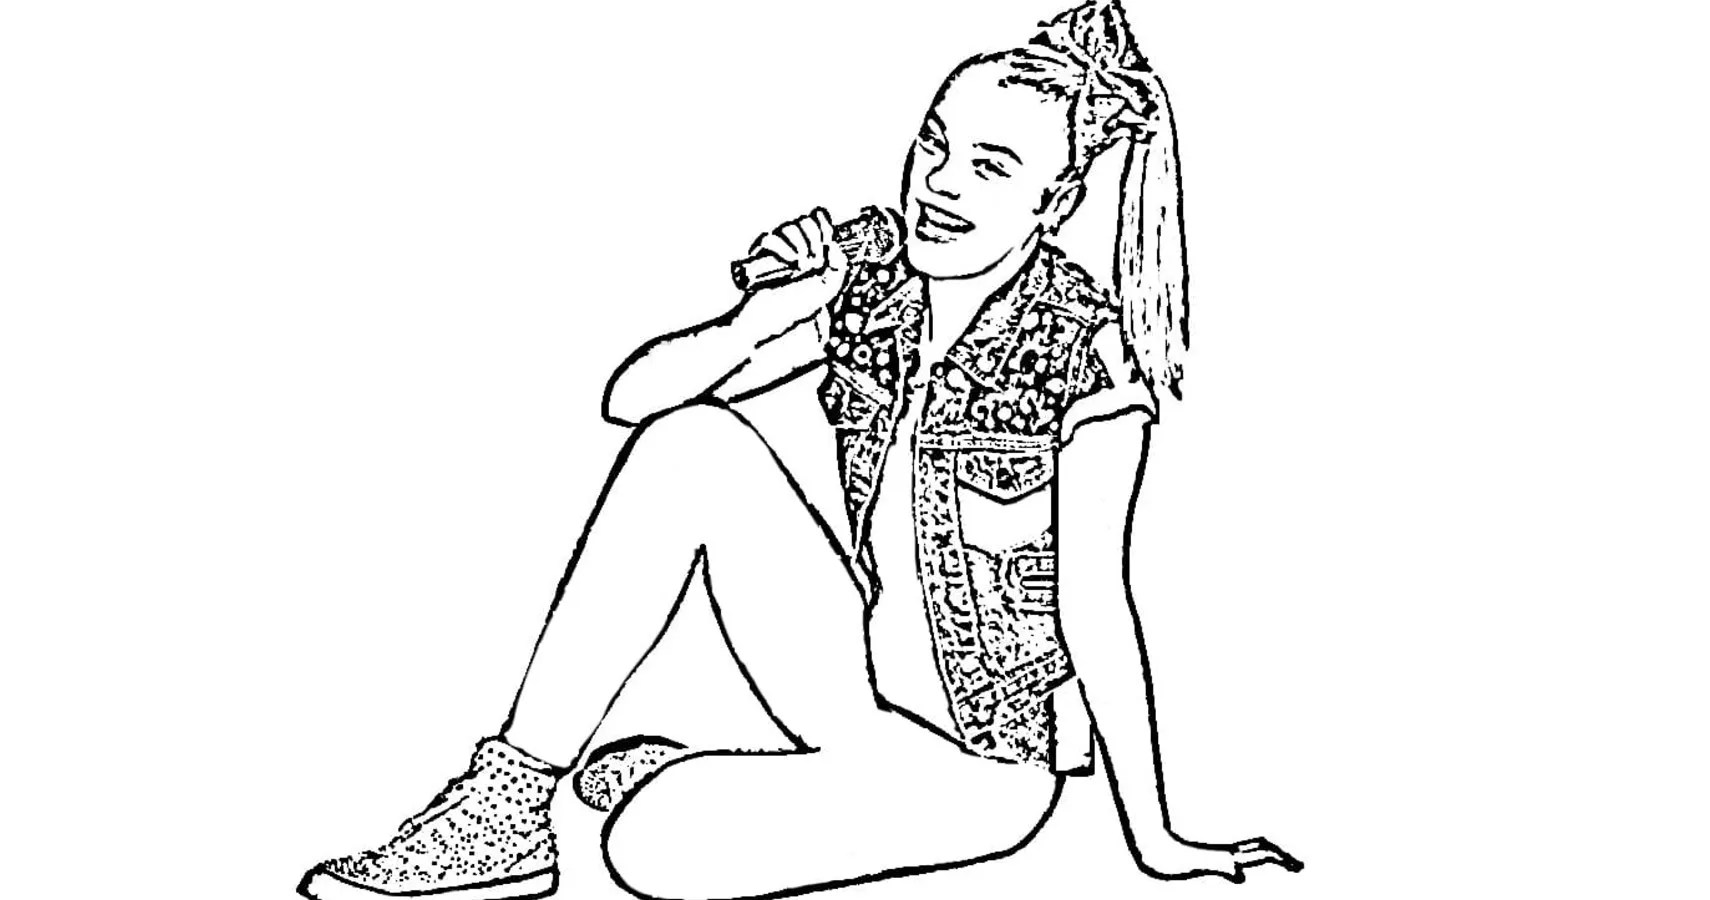 Newpromisingbeauty: Jojo Siwa Printable Color Pages - Amazing Printable Coloring  Sheets For Children Picture Ideas Samsfriedchickenanddonuts - Tons Of Crazy  Jojo Siwa Games Free Coloring Pages For Adults And Kids.